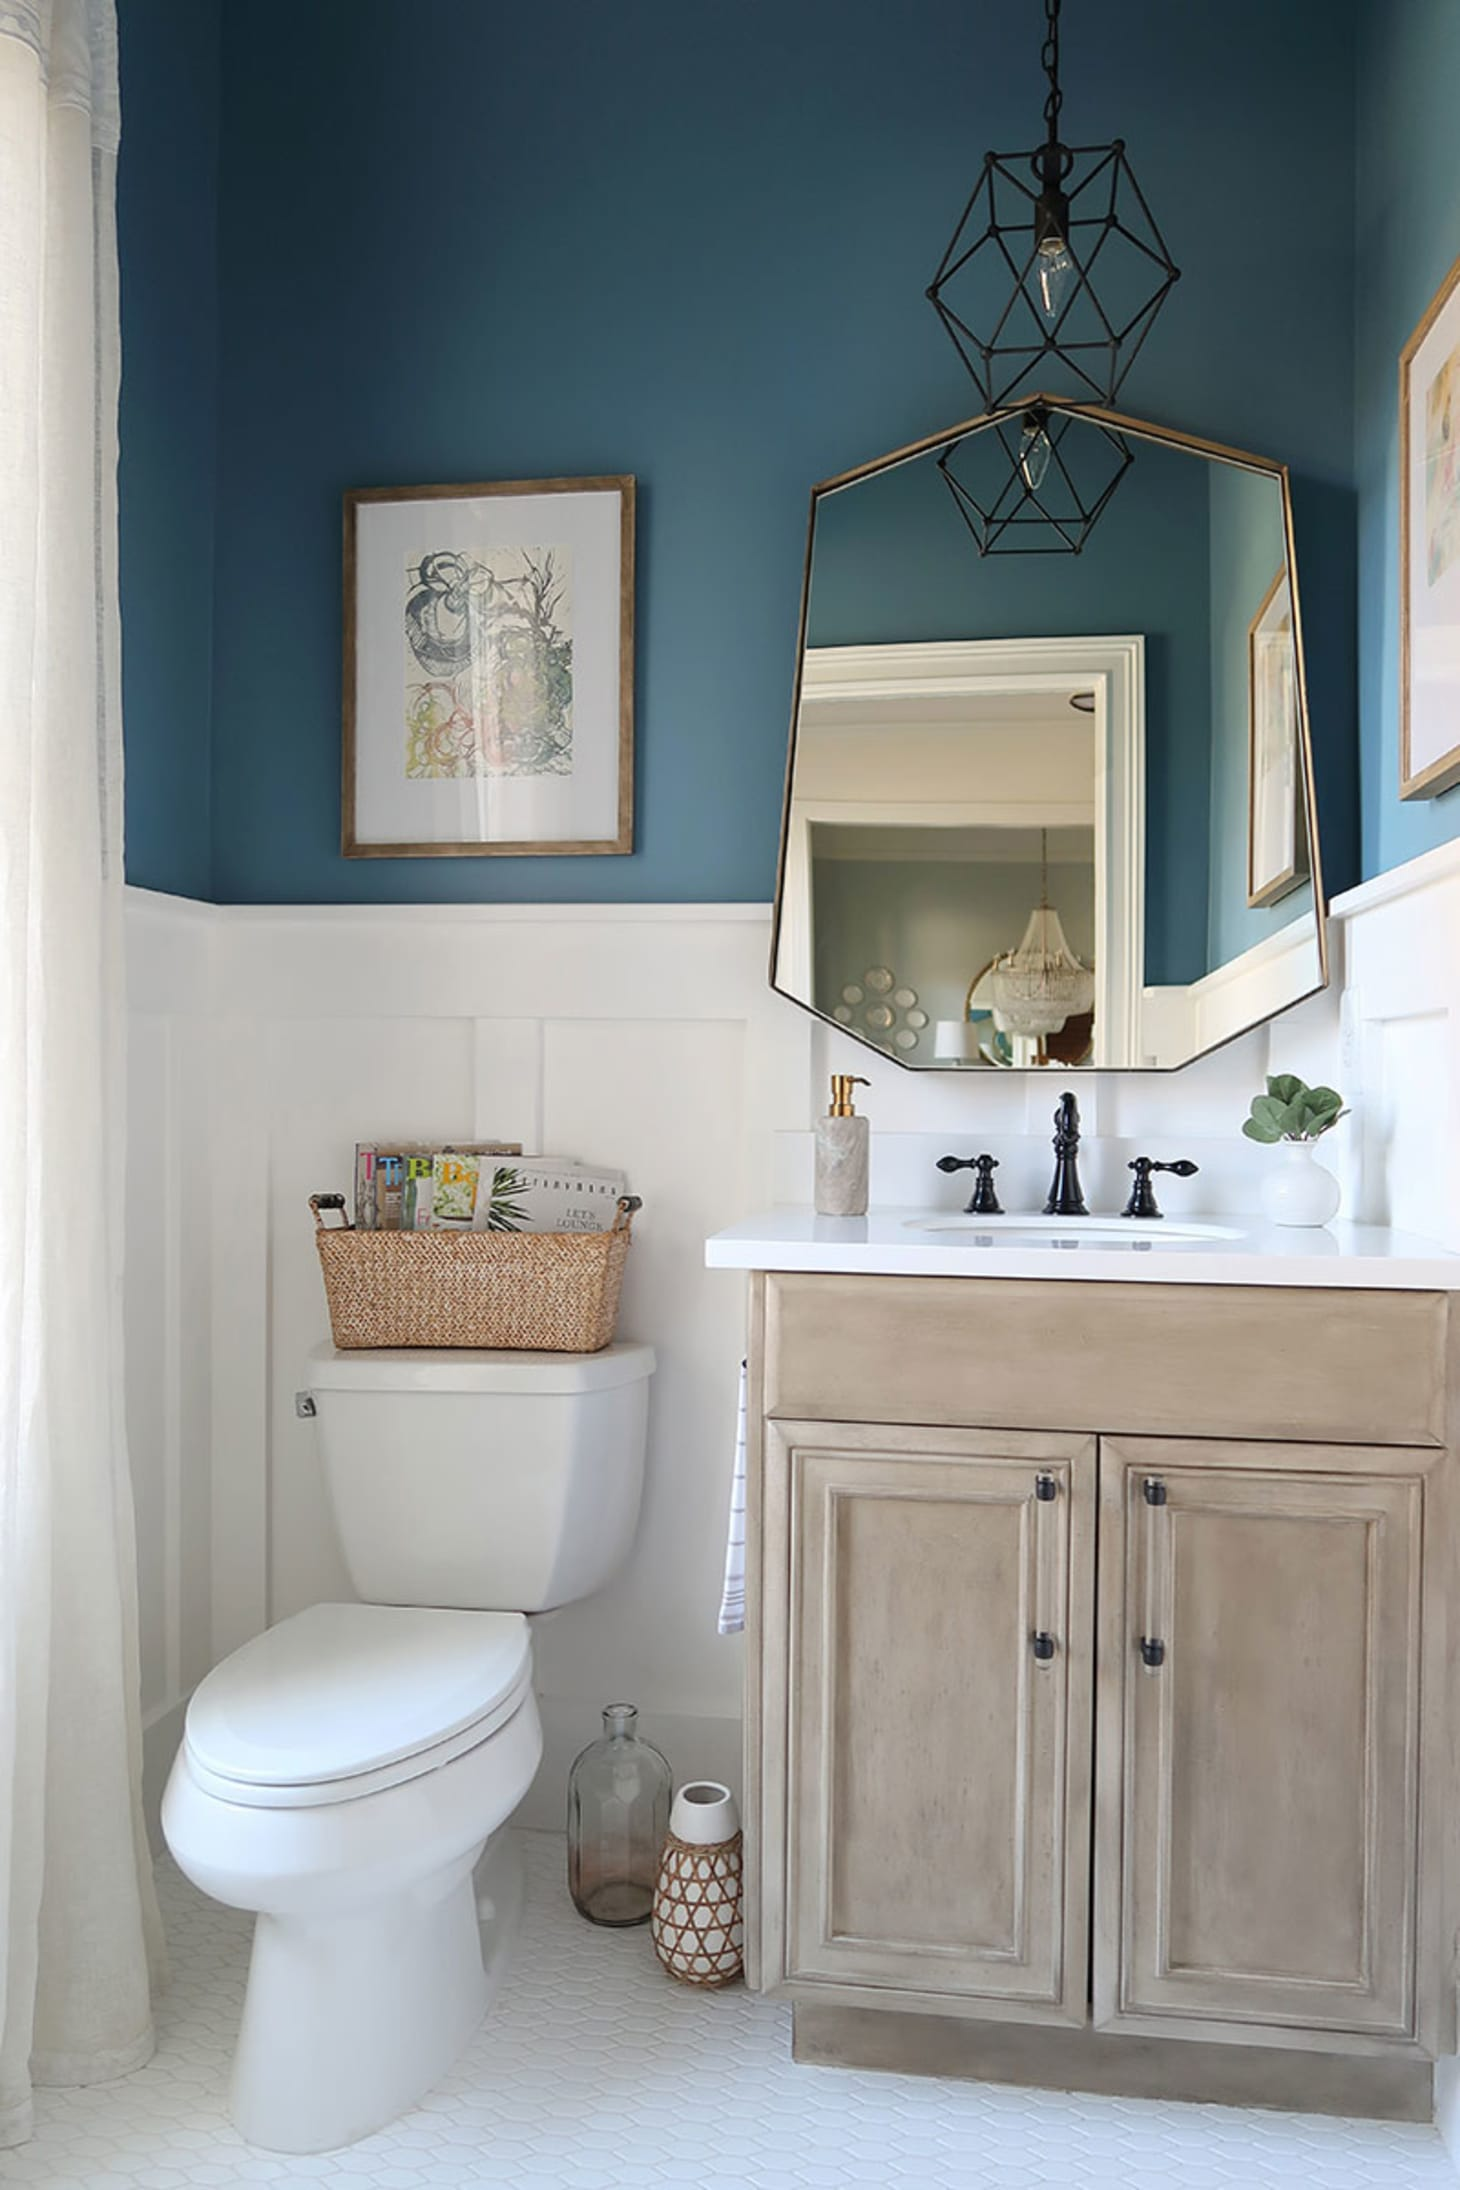 The 30 Best Bathroom Colors - Bathroom Paint Color Ideas ...